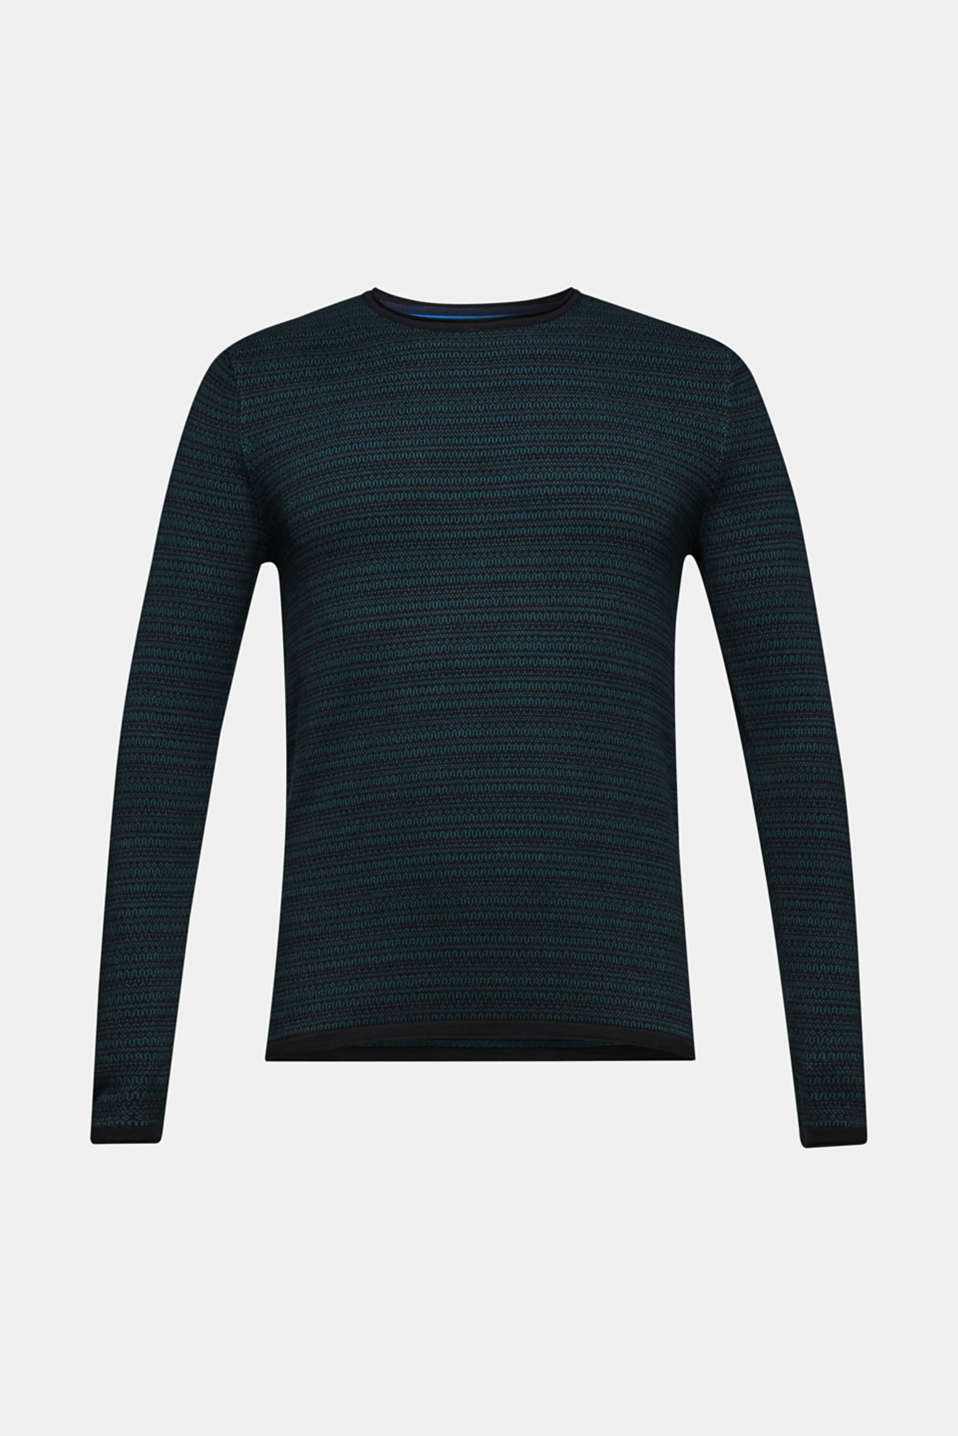 Jacquard jumper made of pure cotton, DARK TEAL GREEN, detail image number 5